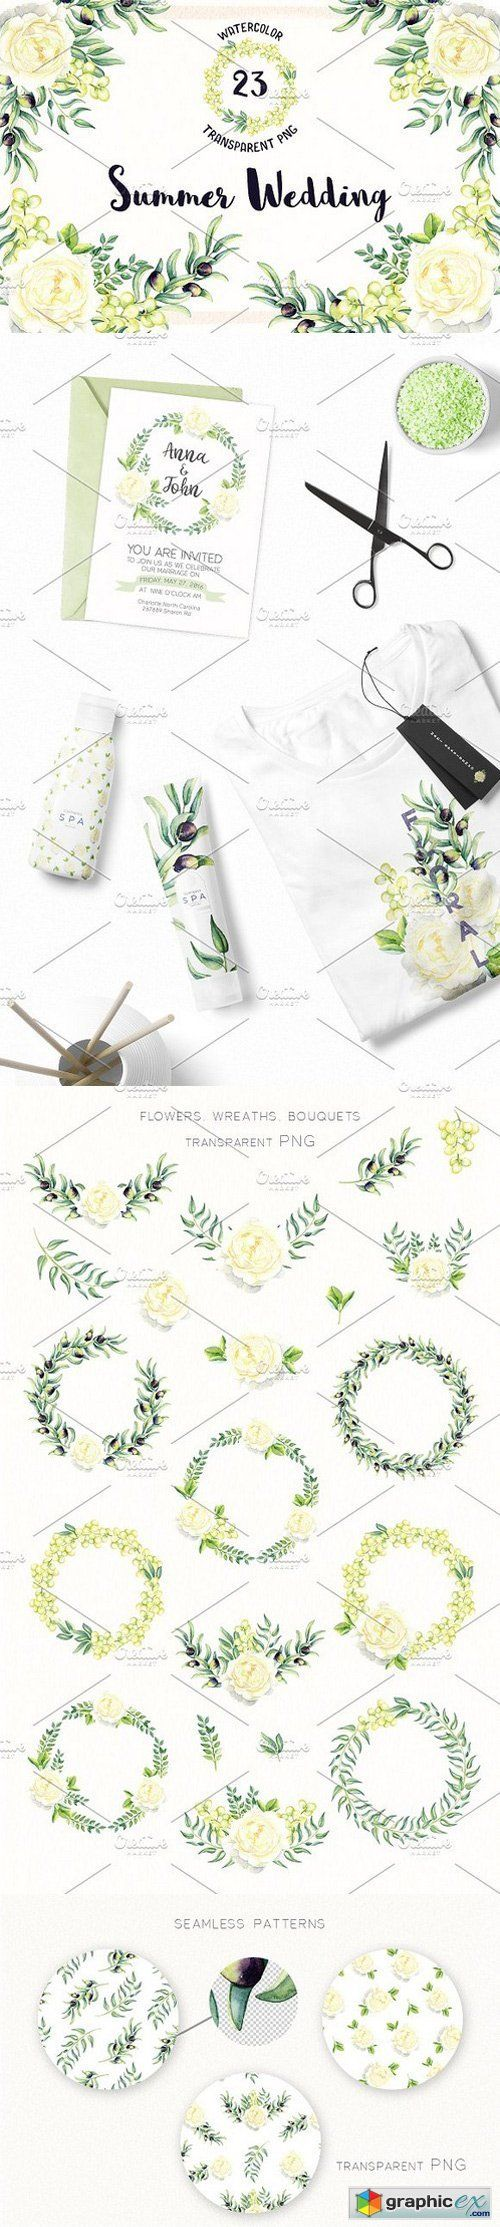 Watercolor Summer Wedding  stock images